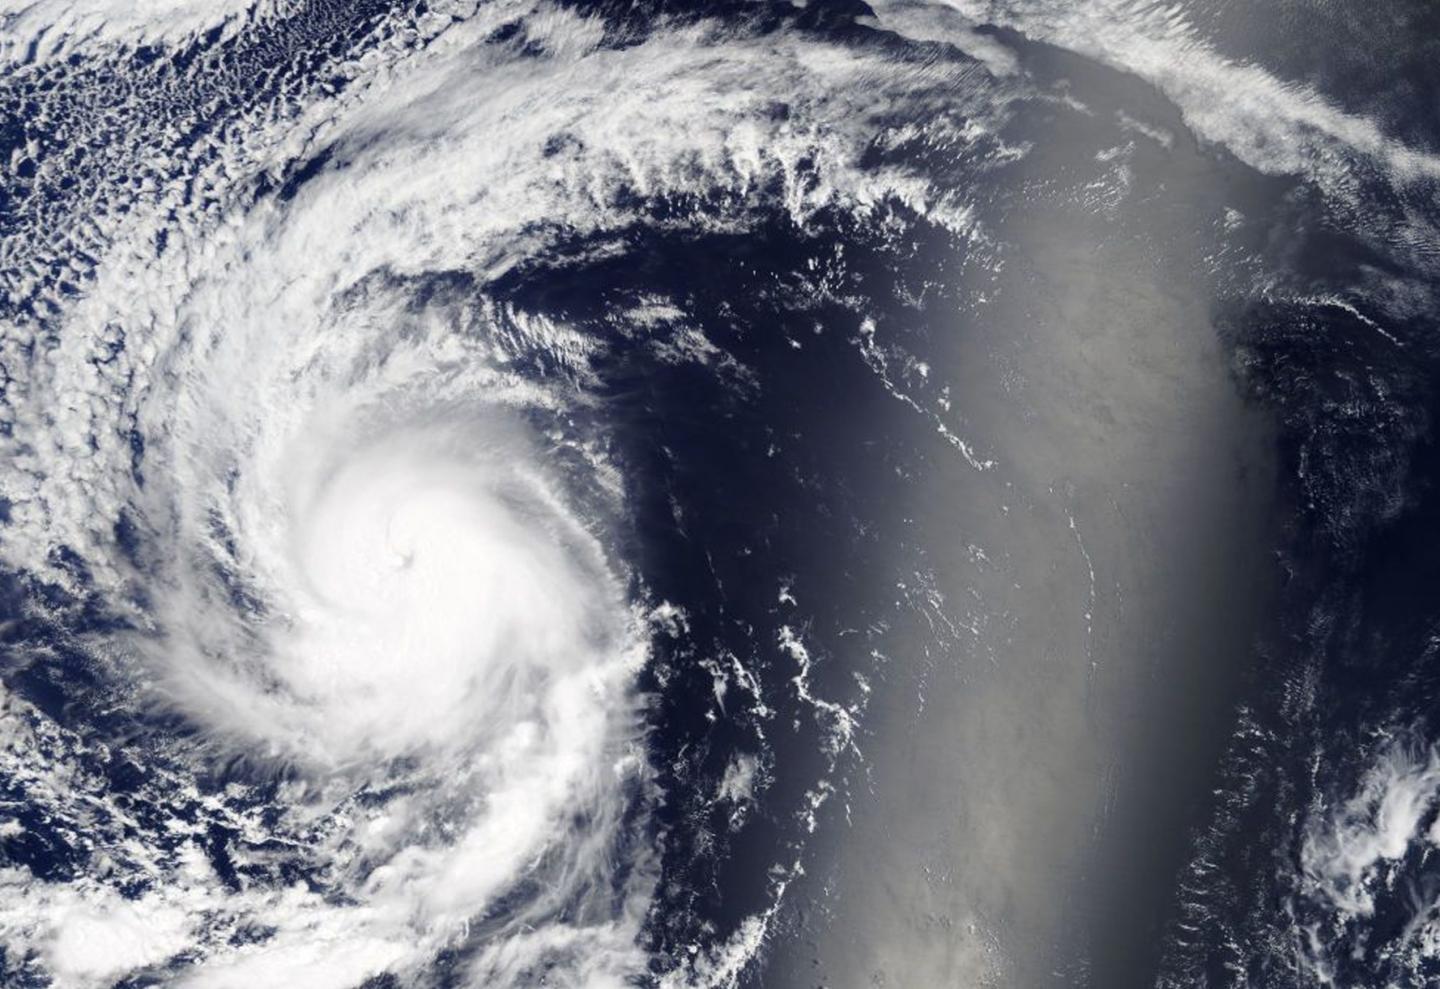 NASA sees major Hurricane Kenneth in Eastern Pacific